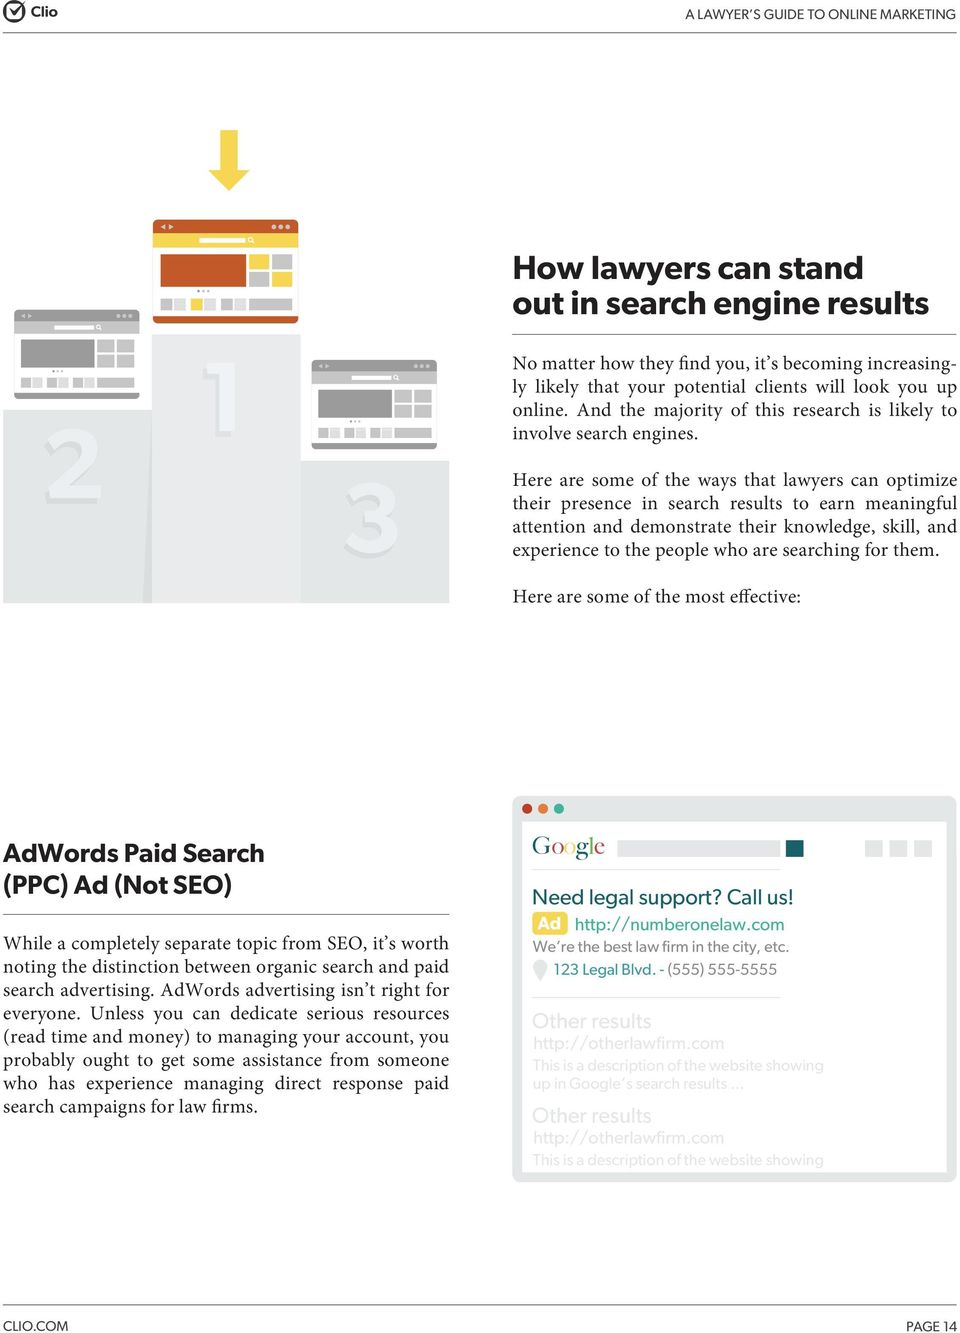 Here are some of the ways that lawyers can optimize their presence in search results to earn meaningful attention and demonstrate their knowledge, skill, and experience to the people who are